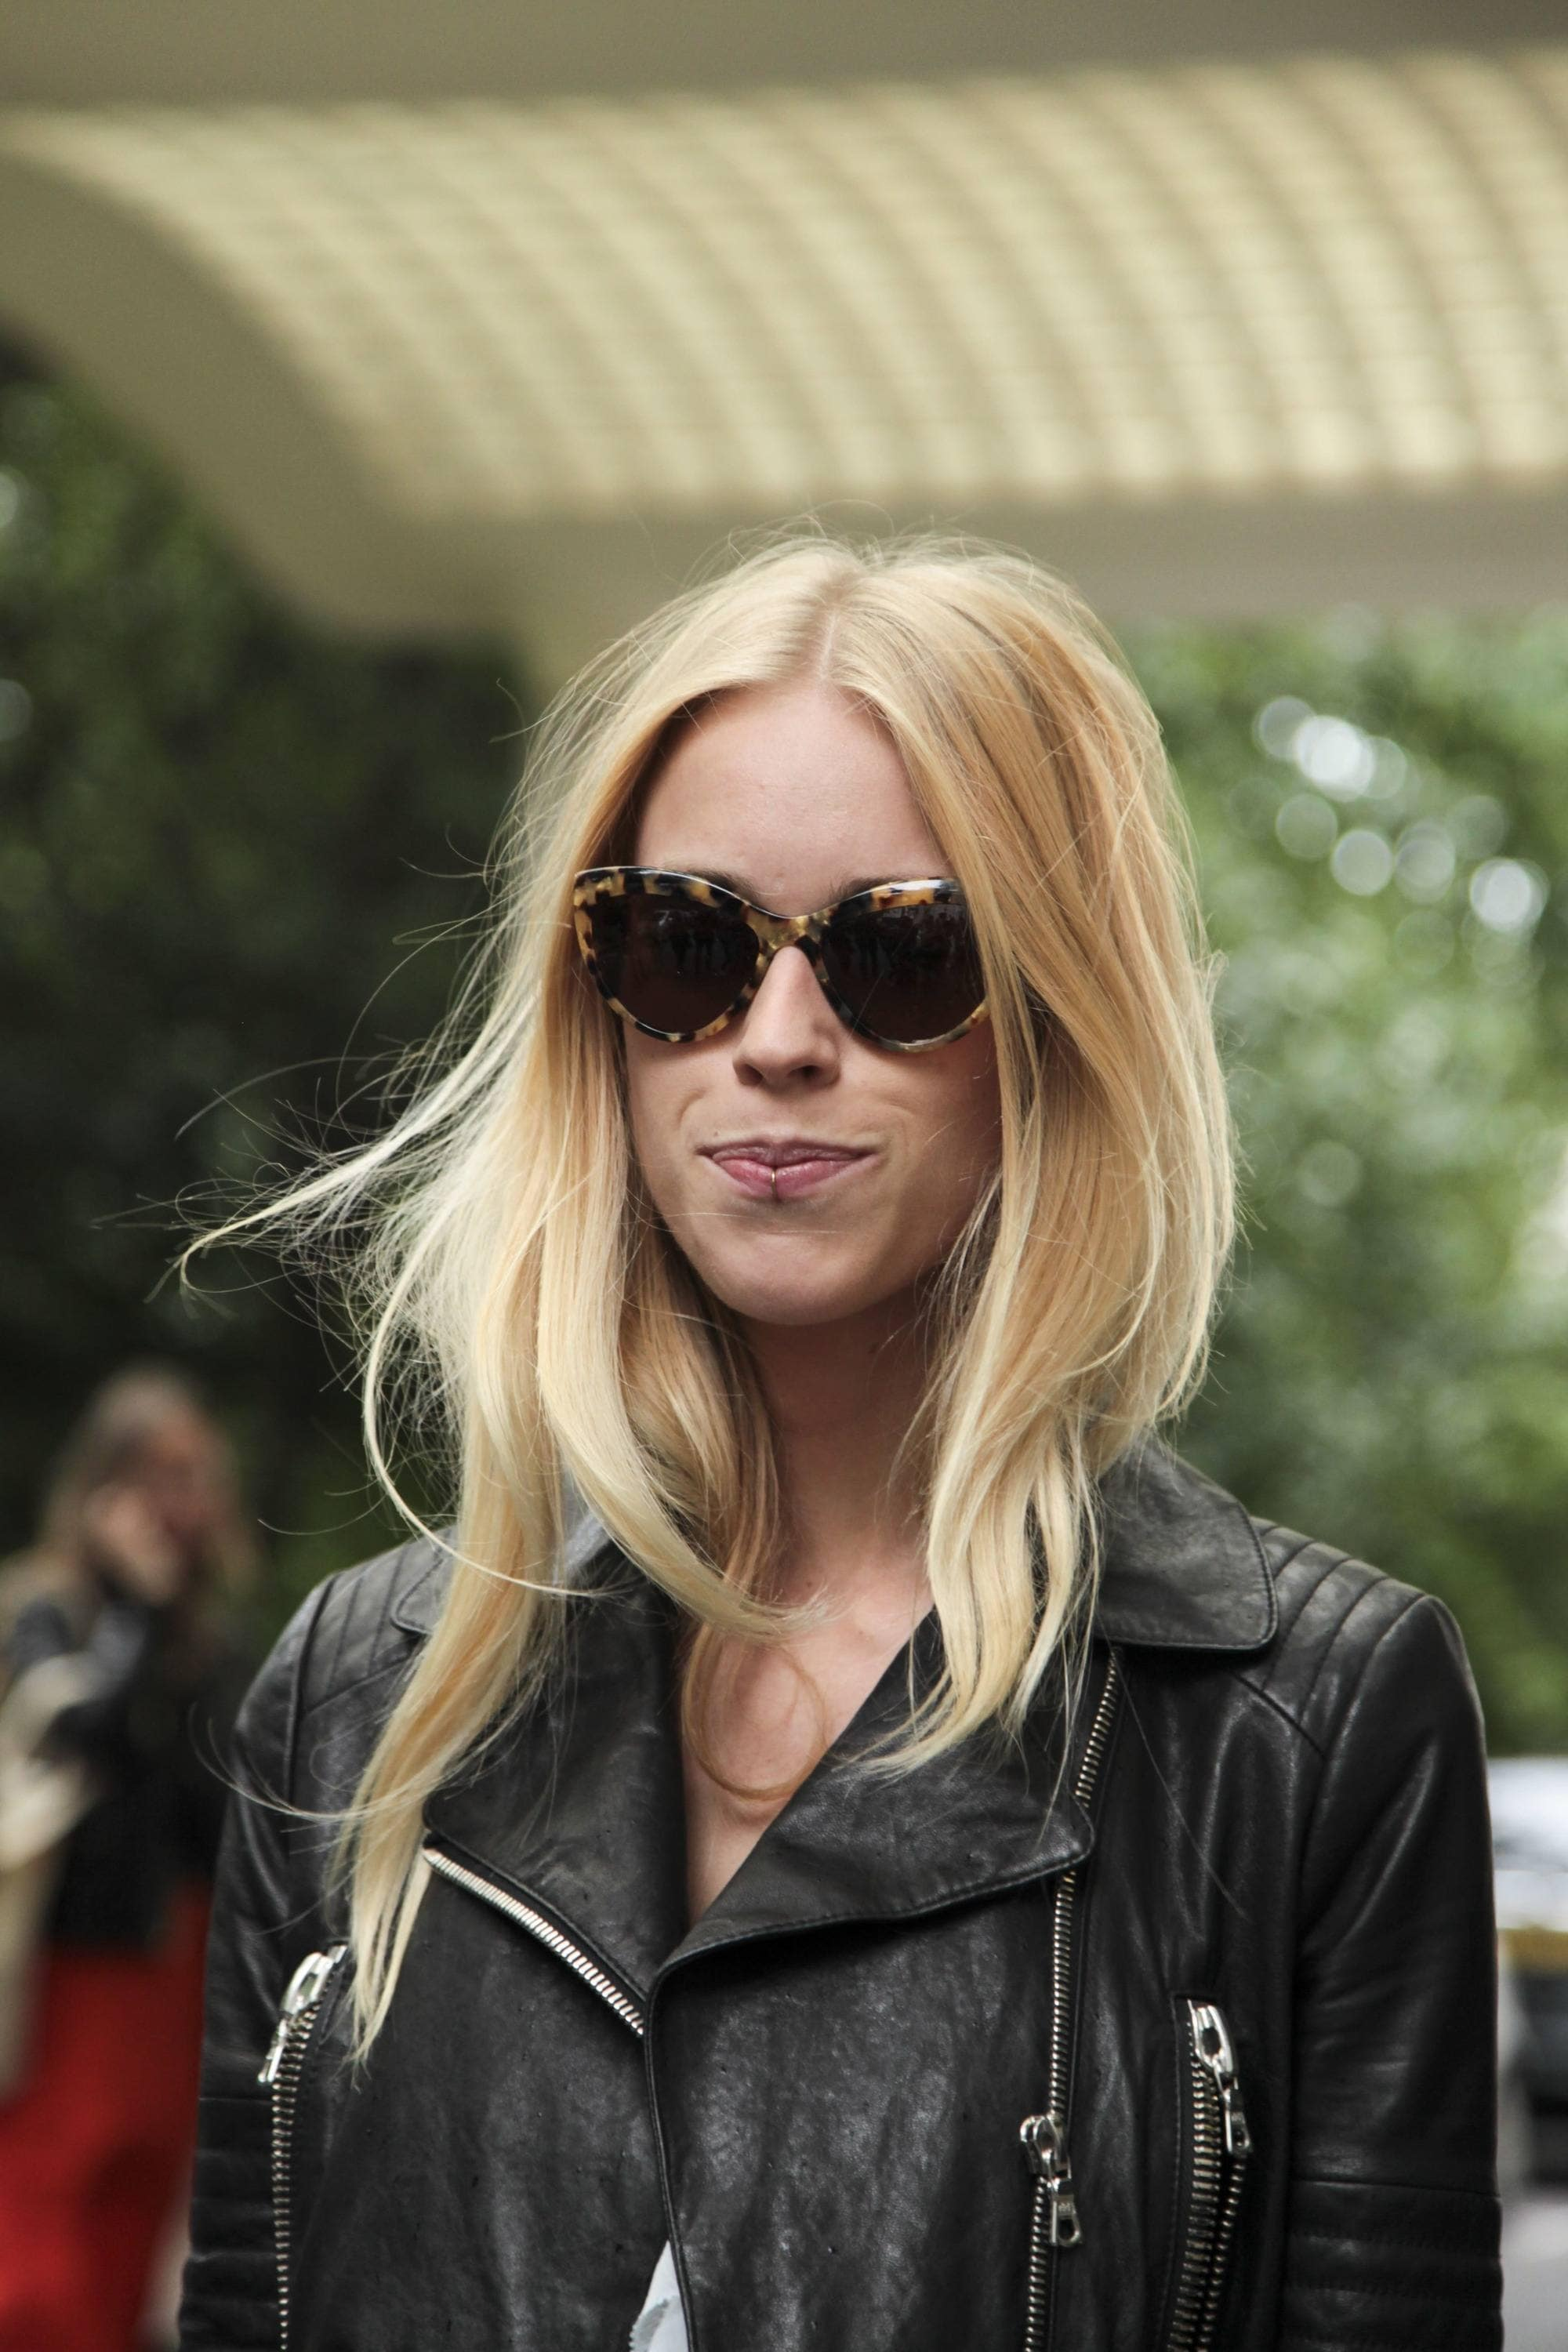 Street style shot of a blonde woman with windswept hair wearing sunglasses